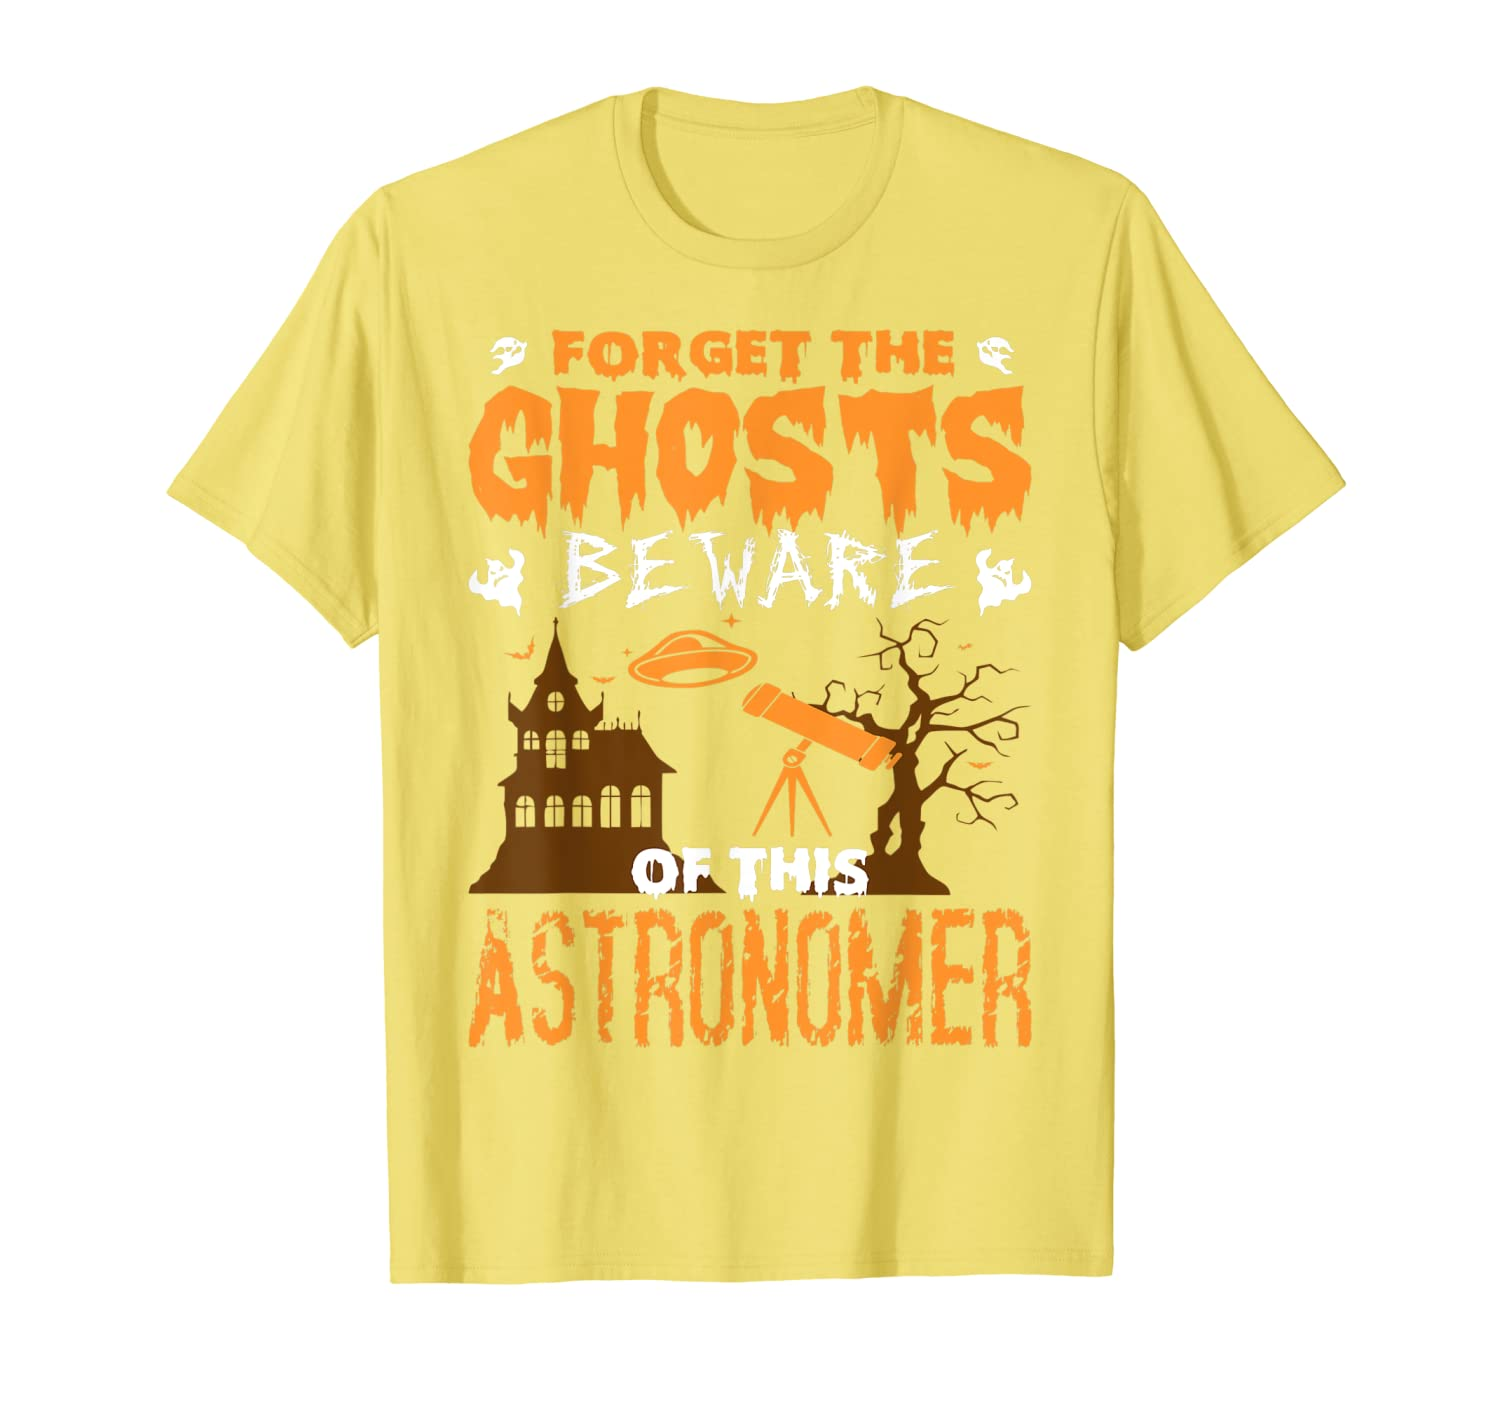 Forget Ghosts Beware Of Astronomer Halloween T-Shirt